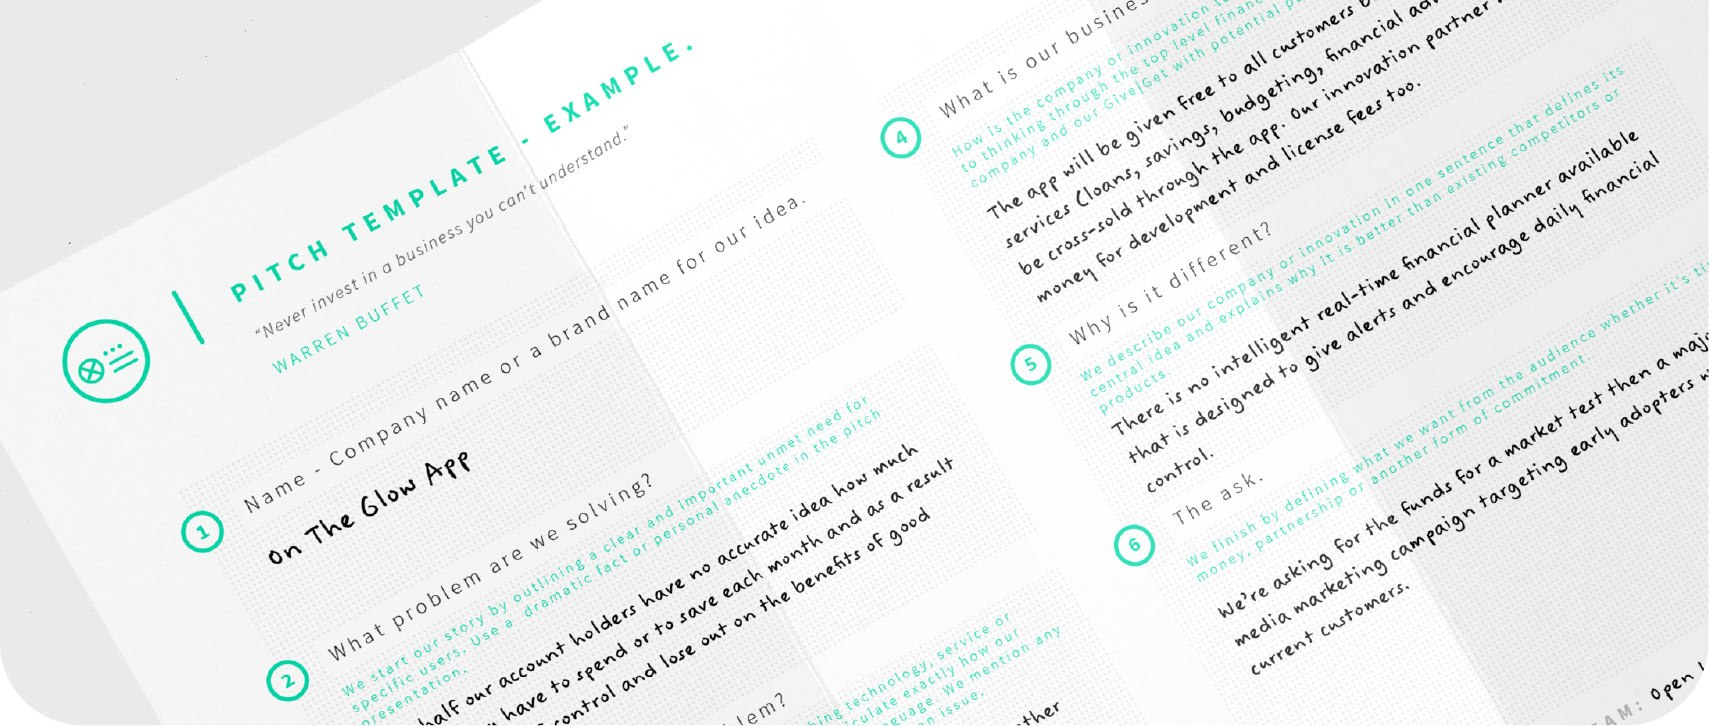 Pitch Template – Open In Business Idea Pitch Template